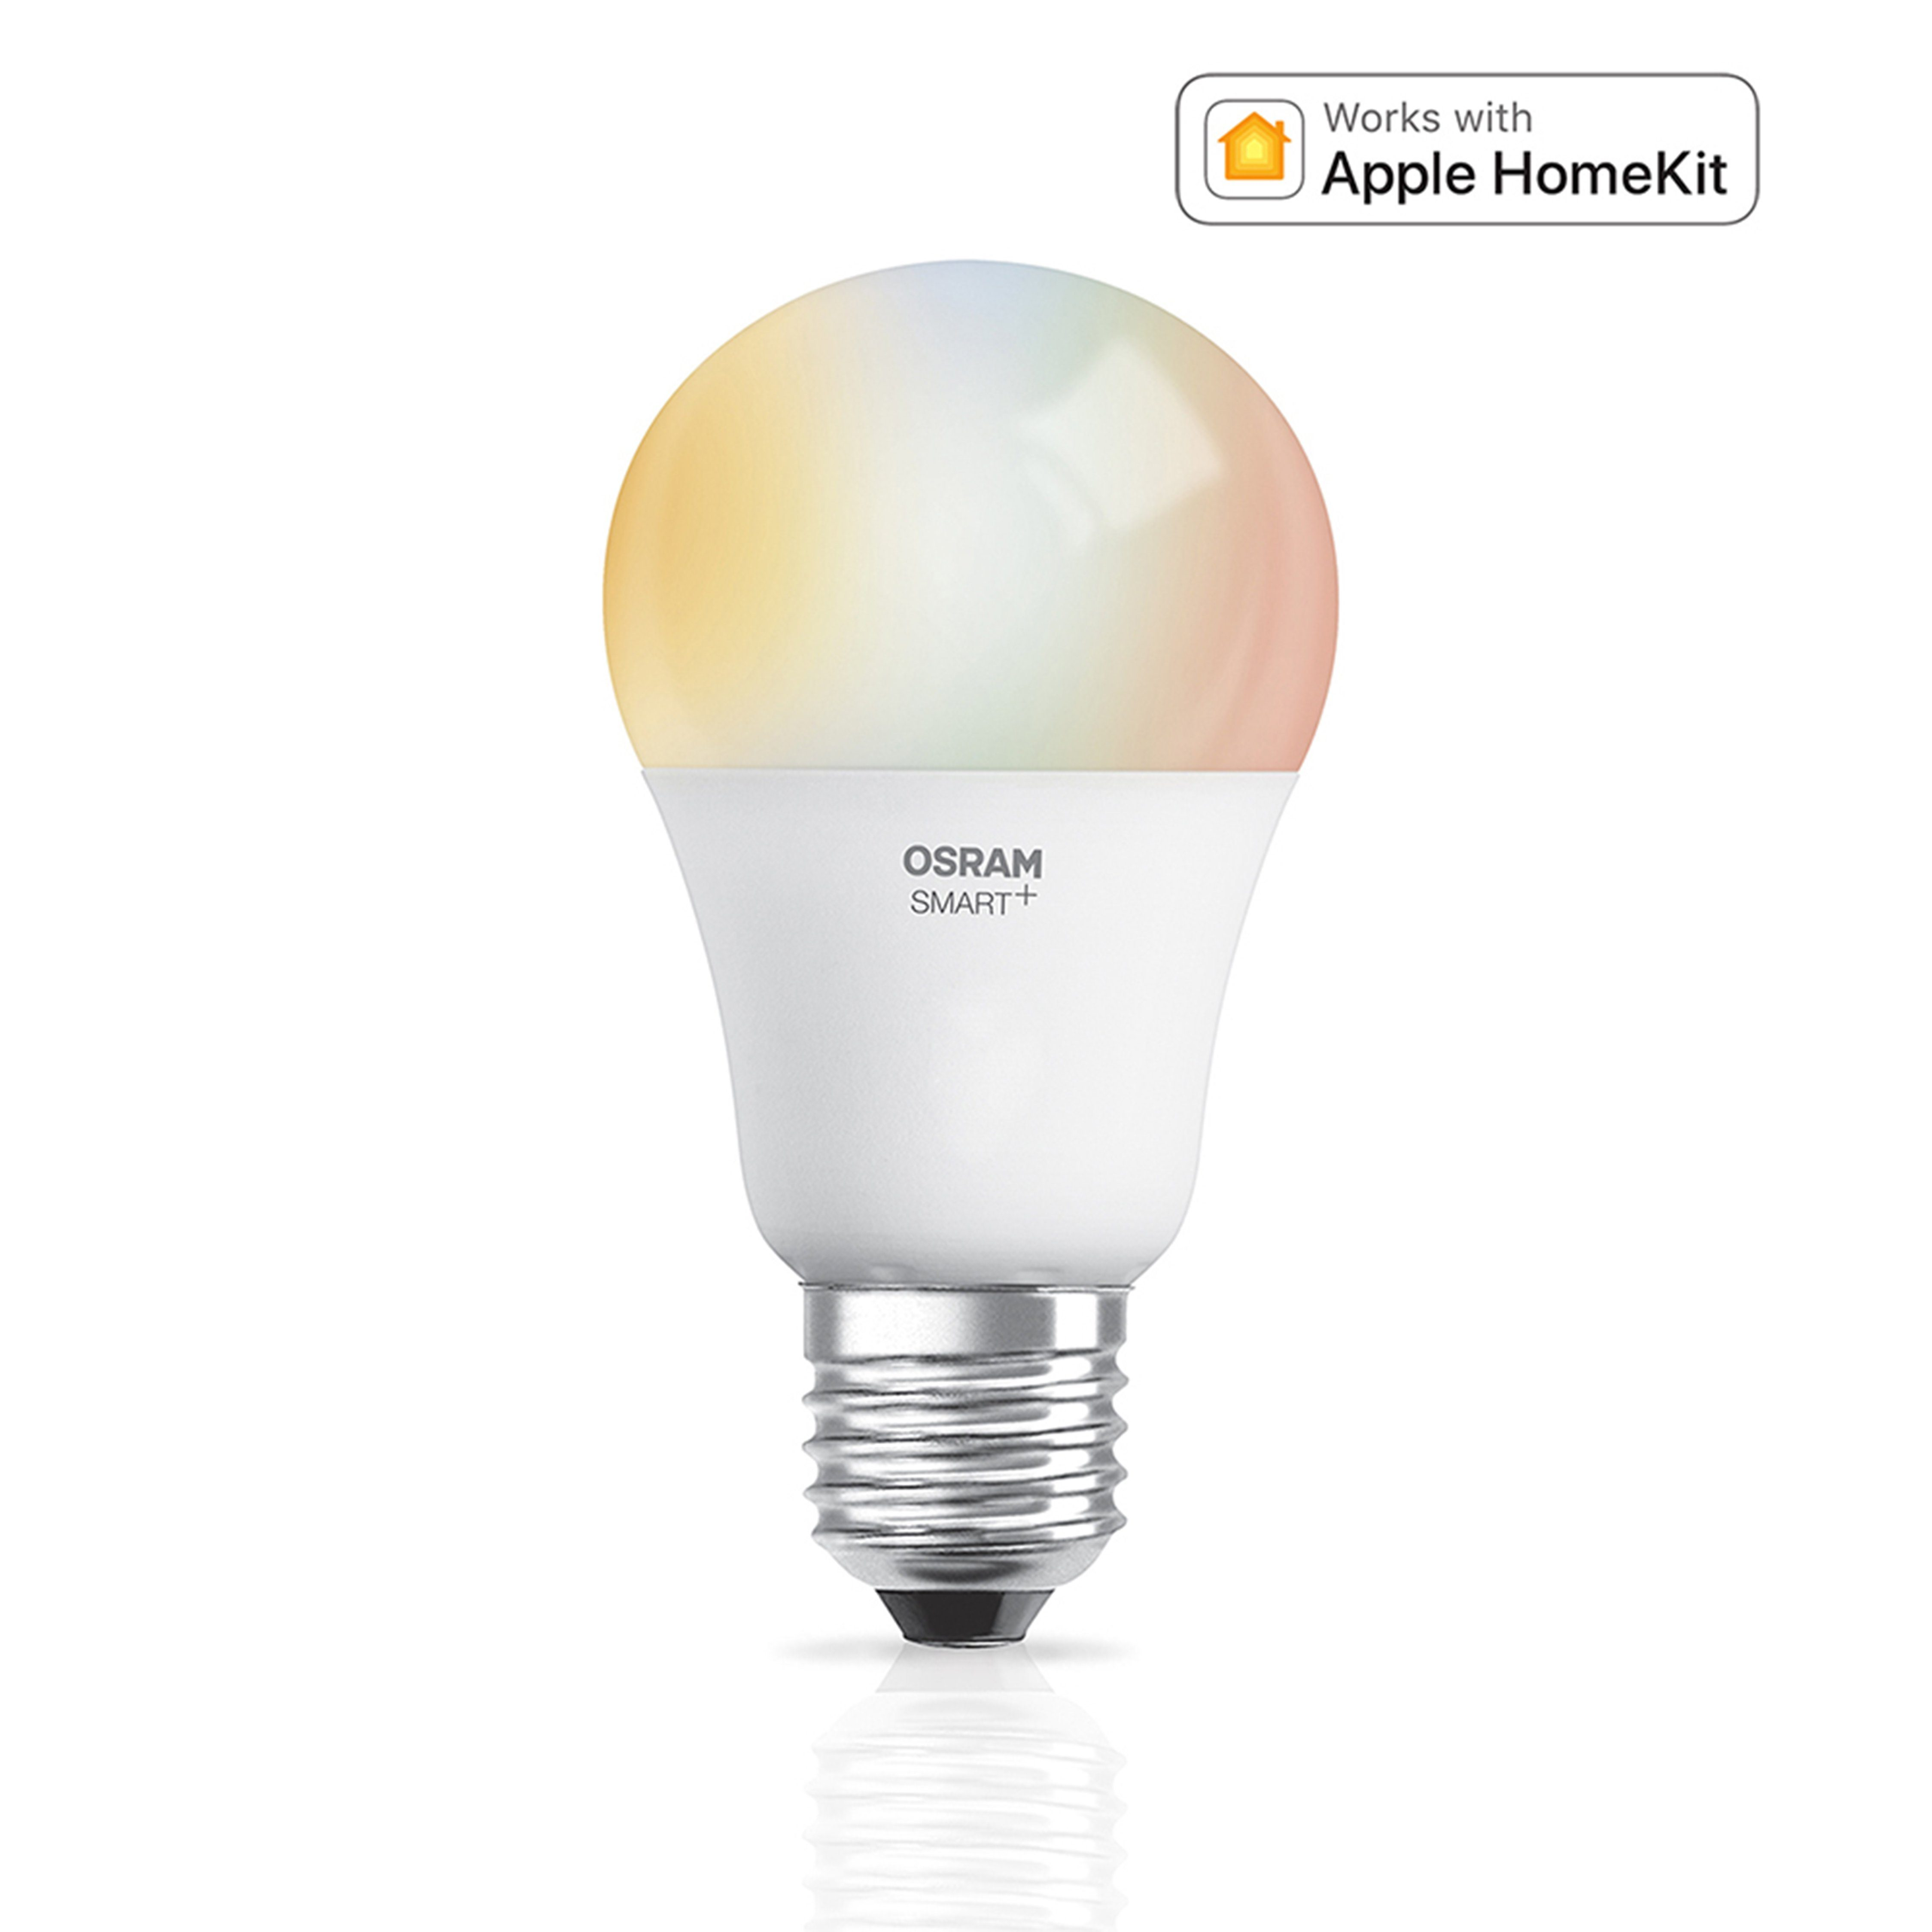 Led Dimmbar E27 Osram Smart Smart Home Led Retrofit Lampe Dimmbar Apple Homekit Classic E27 Multicolor 230v Online Kaufen Otto